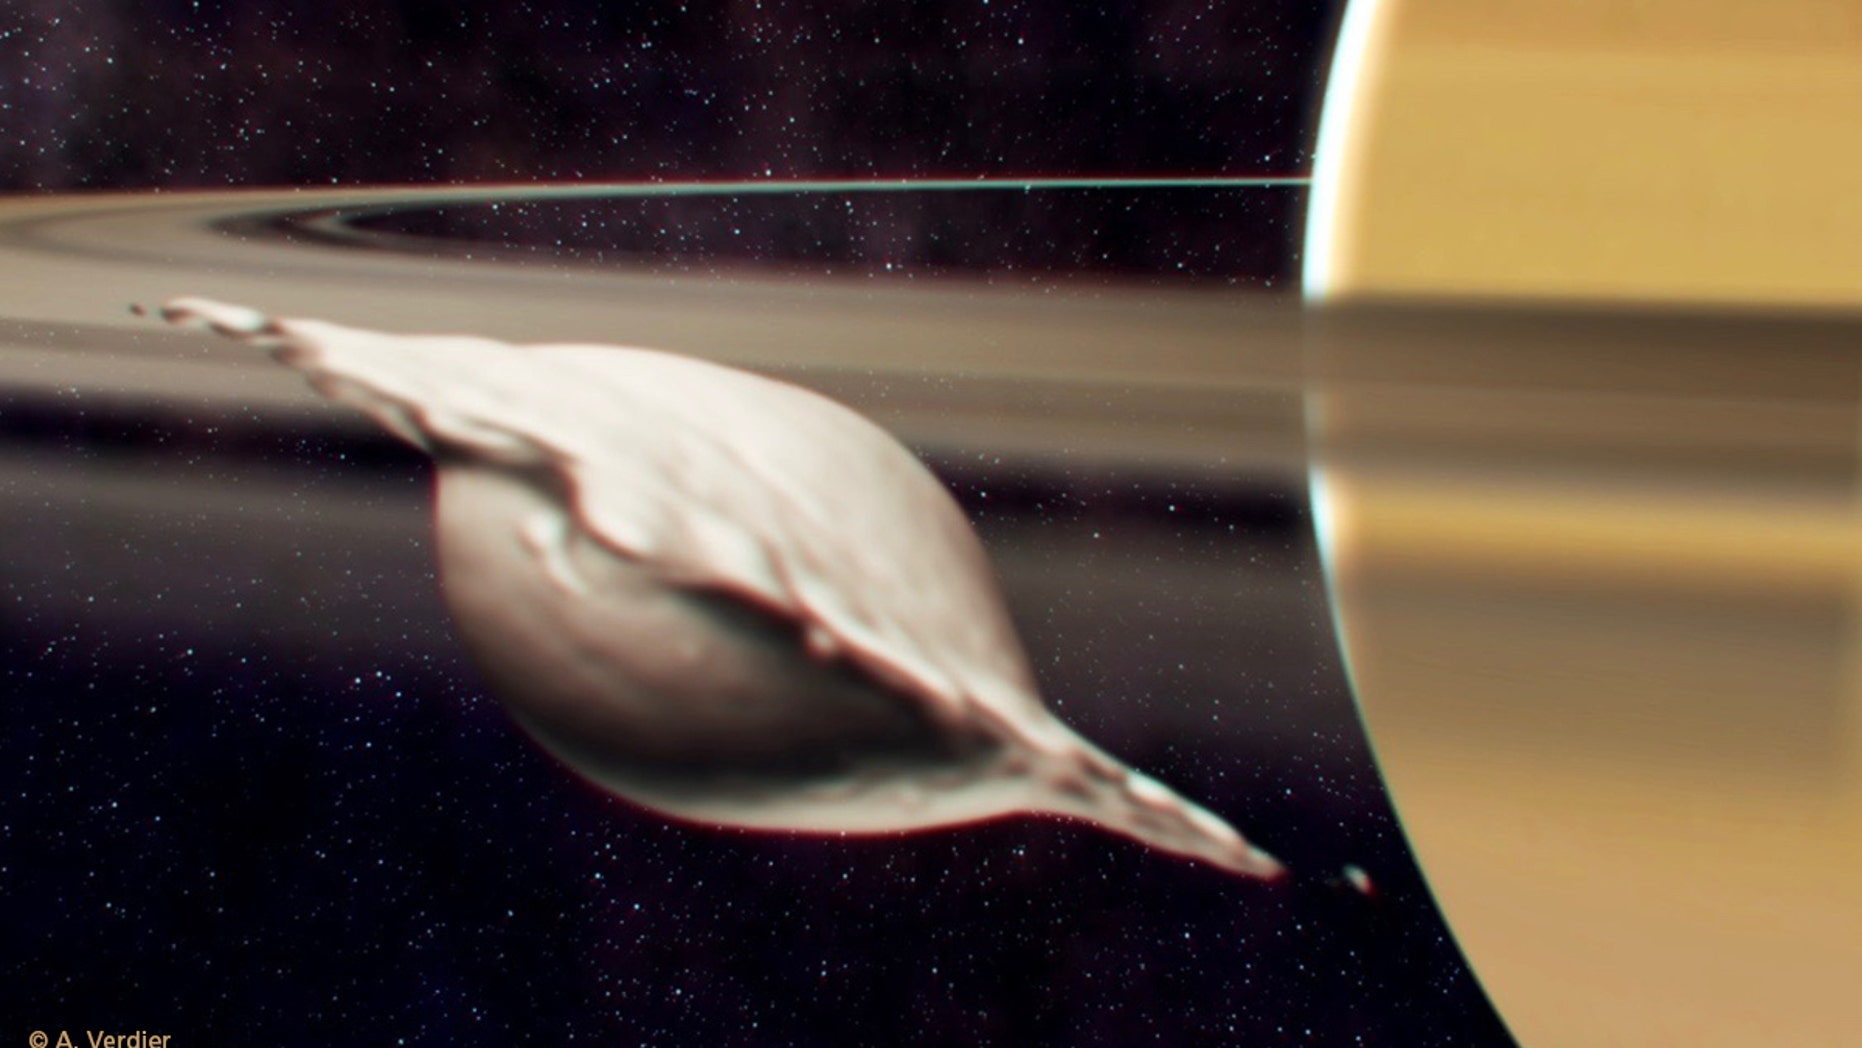 Saturn's moon Atlas got its flat, ravioli-like shape from the merging collision of two similar-size bodies, according to new research. Here, Atlas is shown mid-collision.